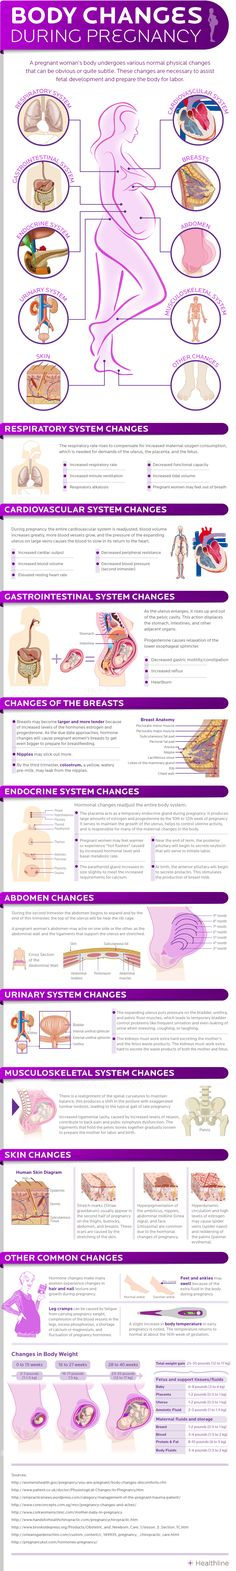 Check out this insightful info-graphic on how the body changes during pregnancy.